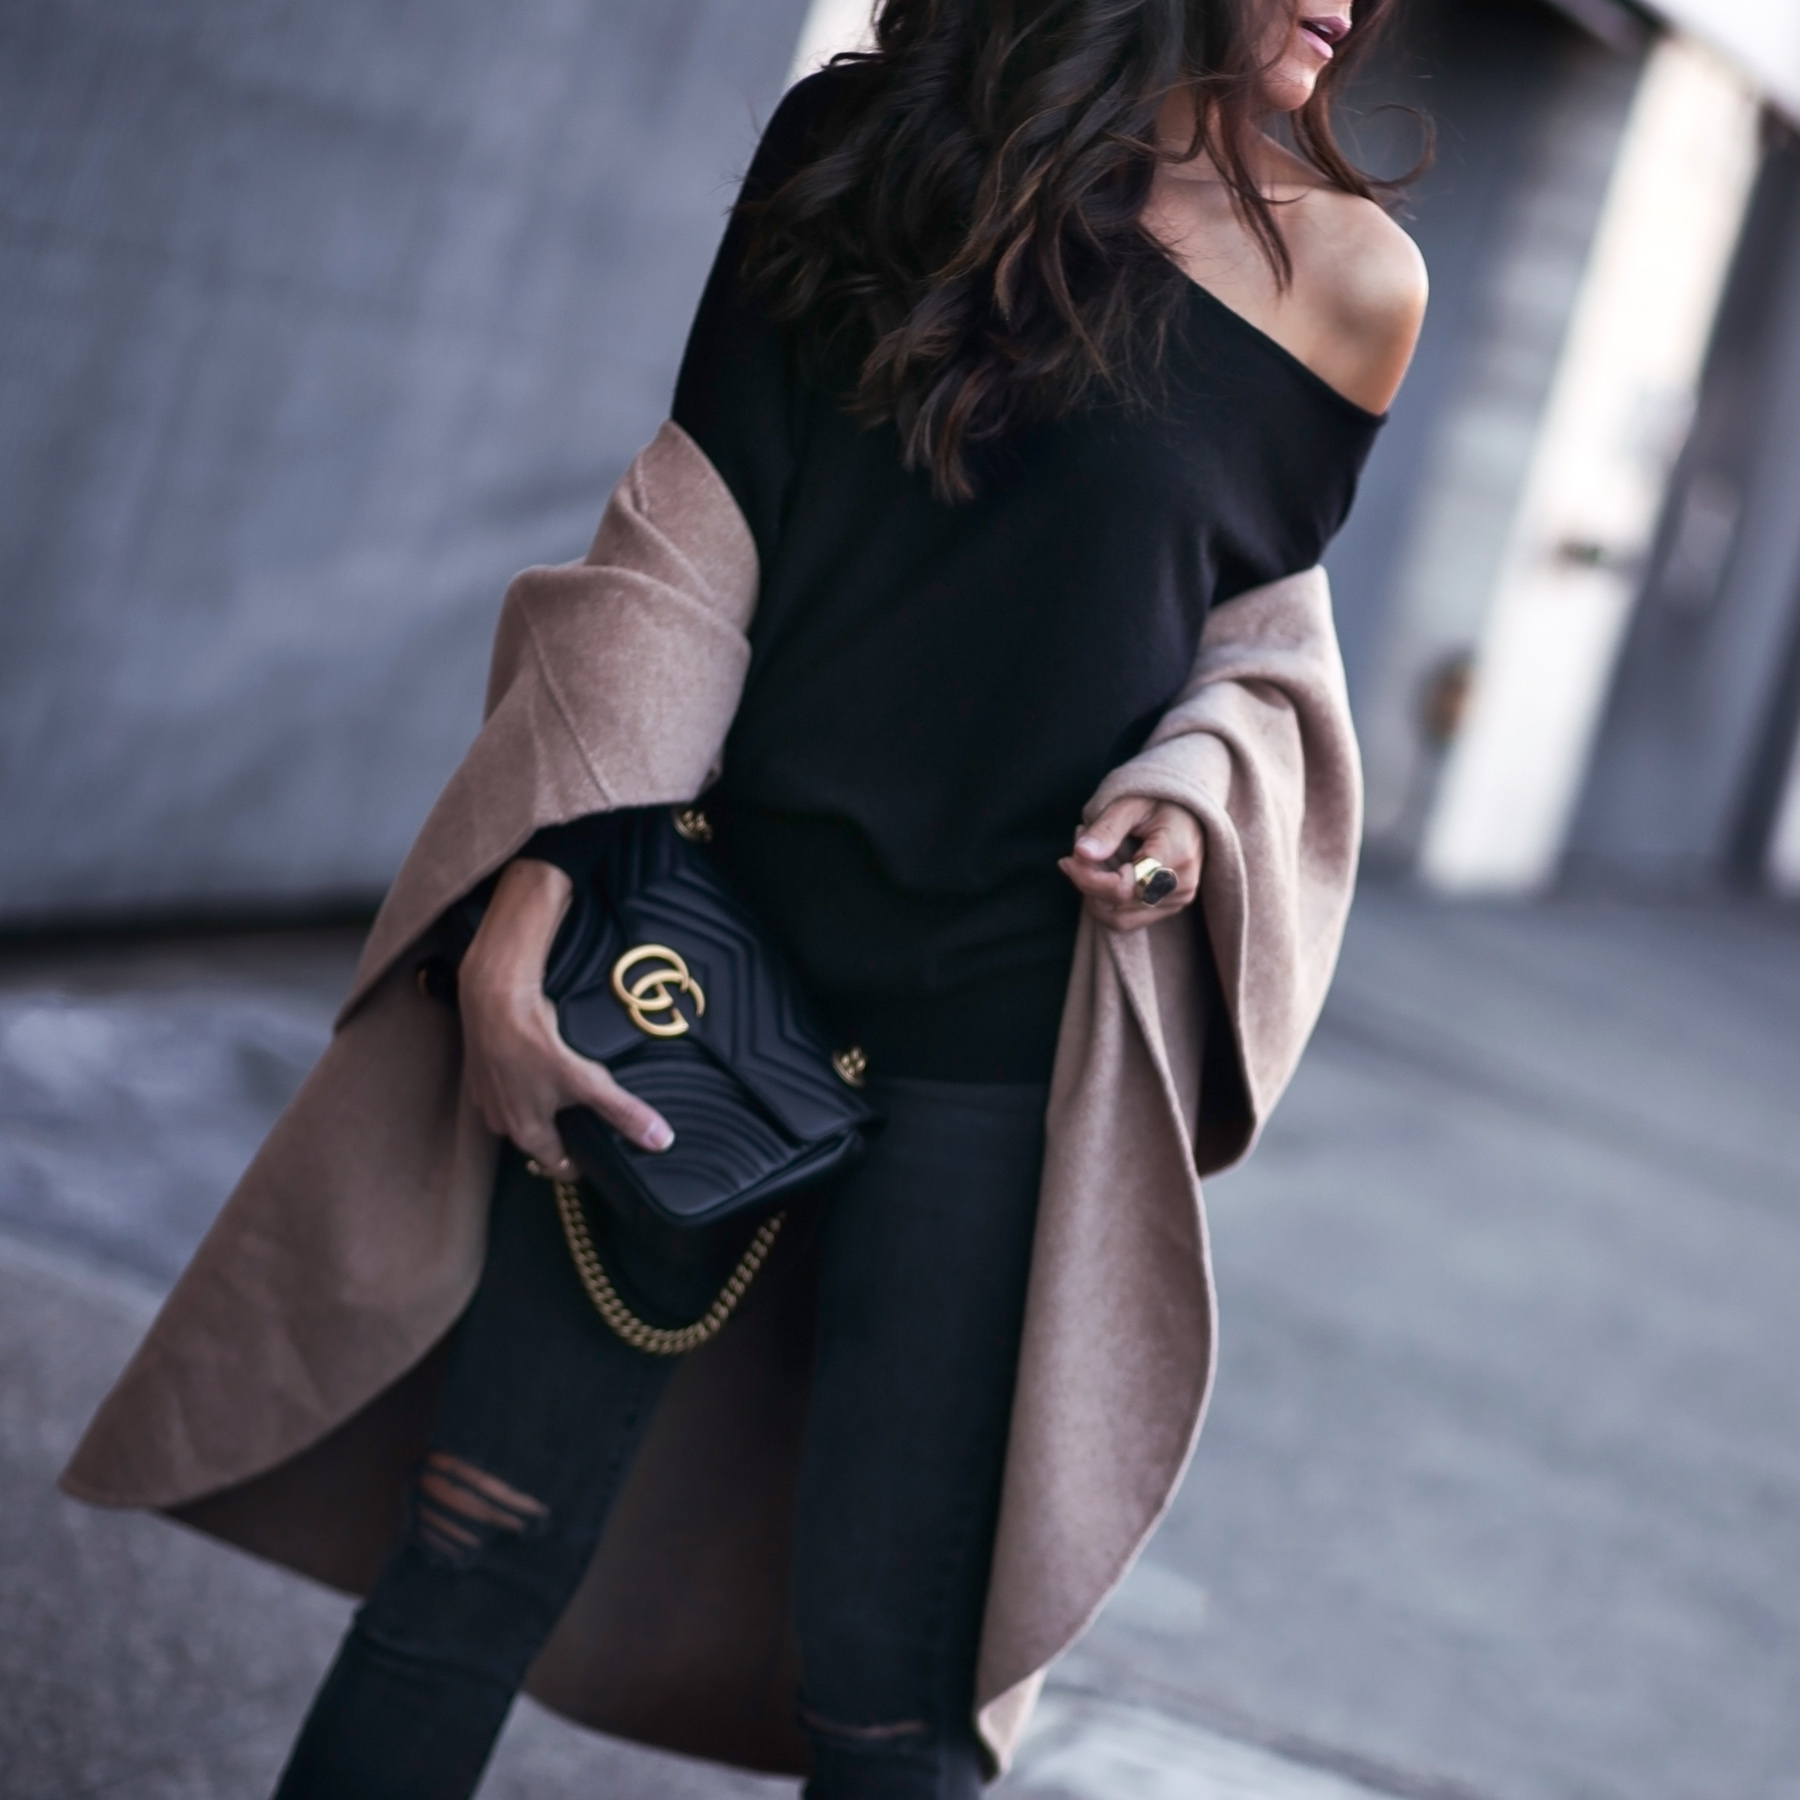 Free_People_Sweater_Camel_Coat_Gucci_Marmont_Bag.jpg